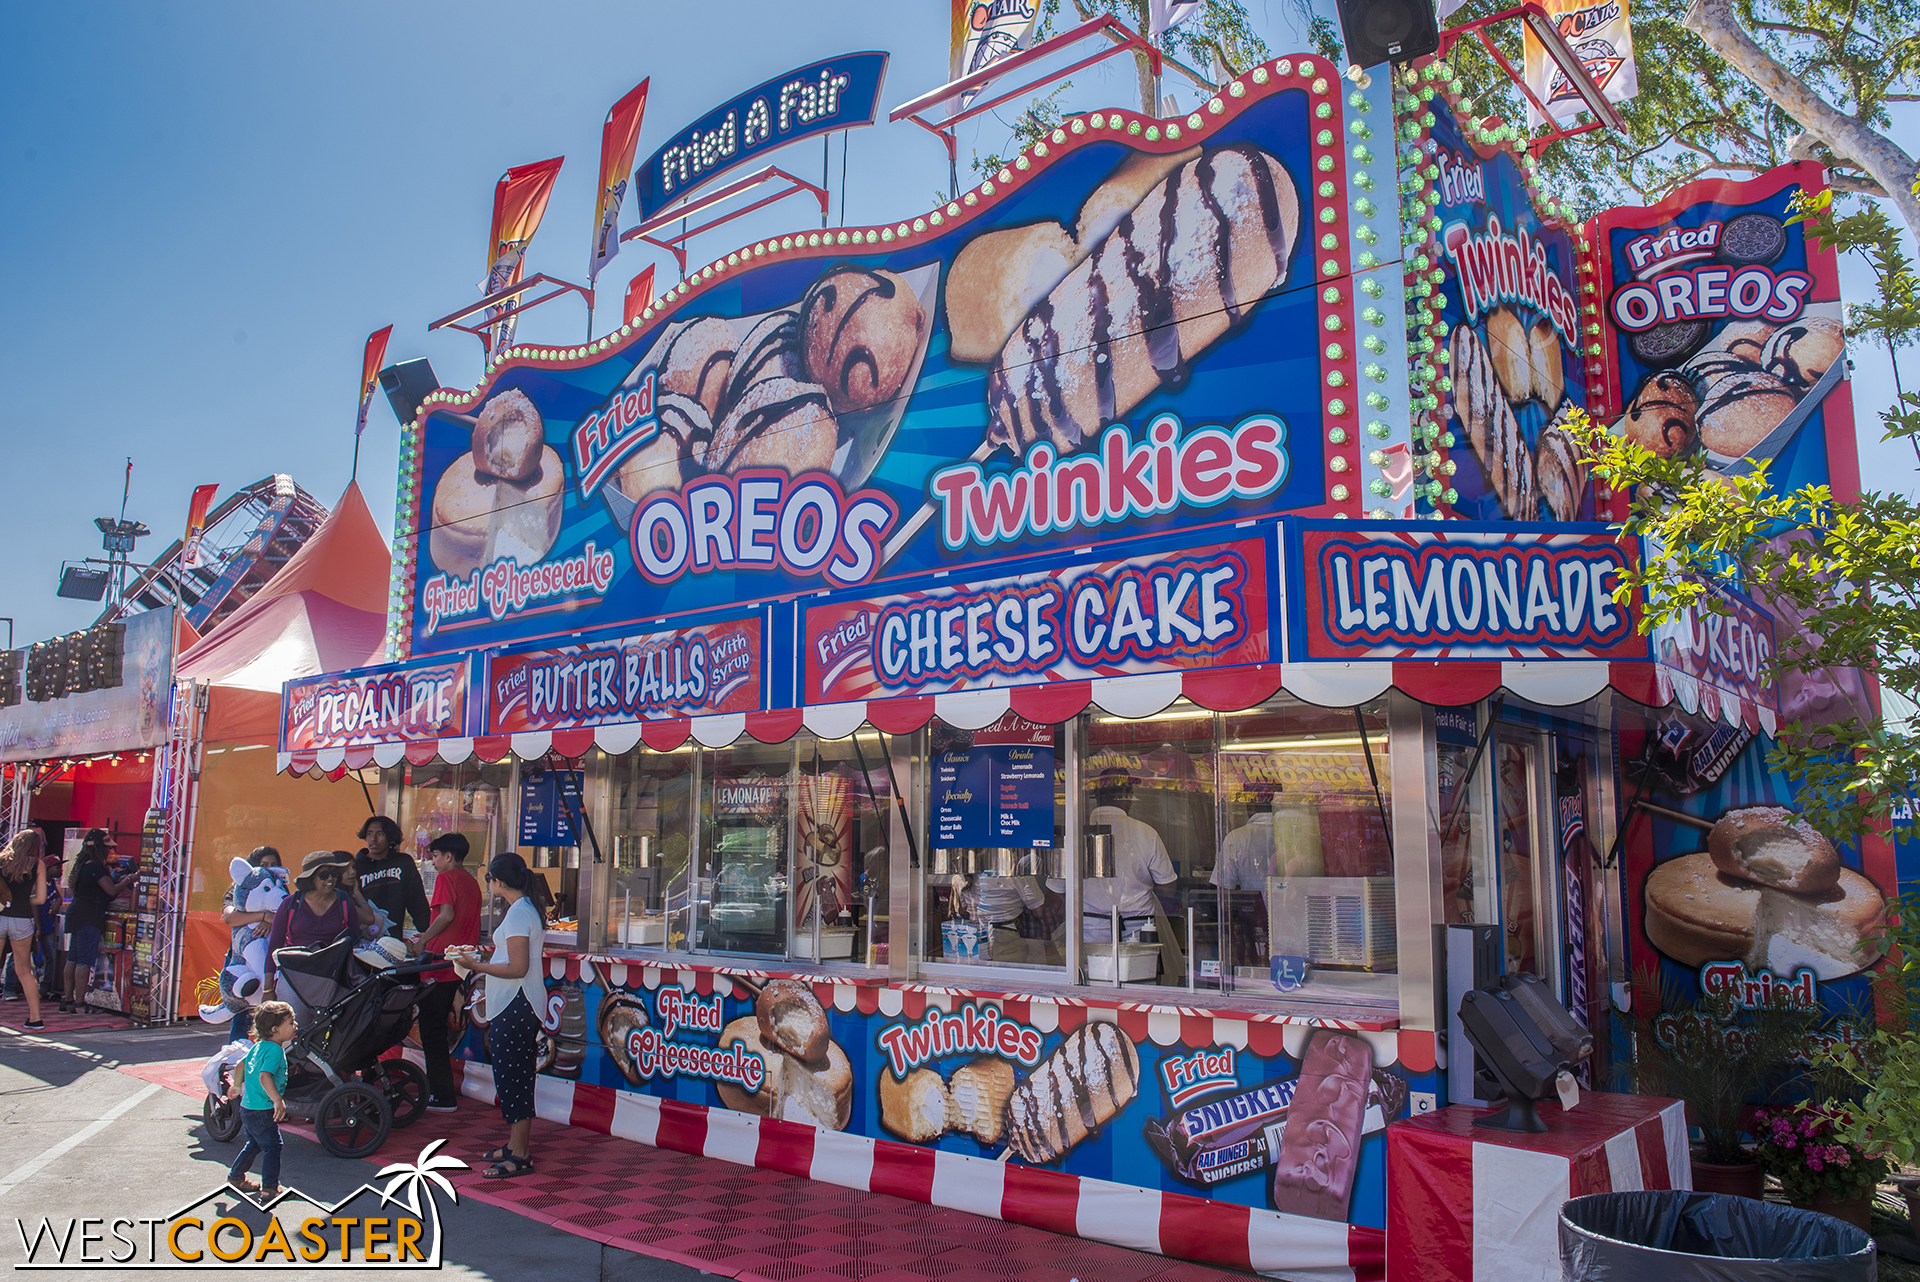 Fried A Fair has several stands around the OC Fair and plenty of deep friend desserts.  From past years' experience, the Deep Fried Oreos are and Fried Cheesecake are actually pretty good.